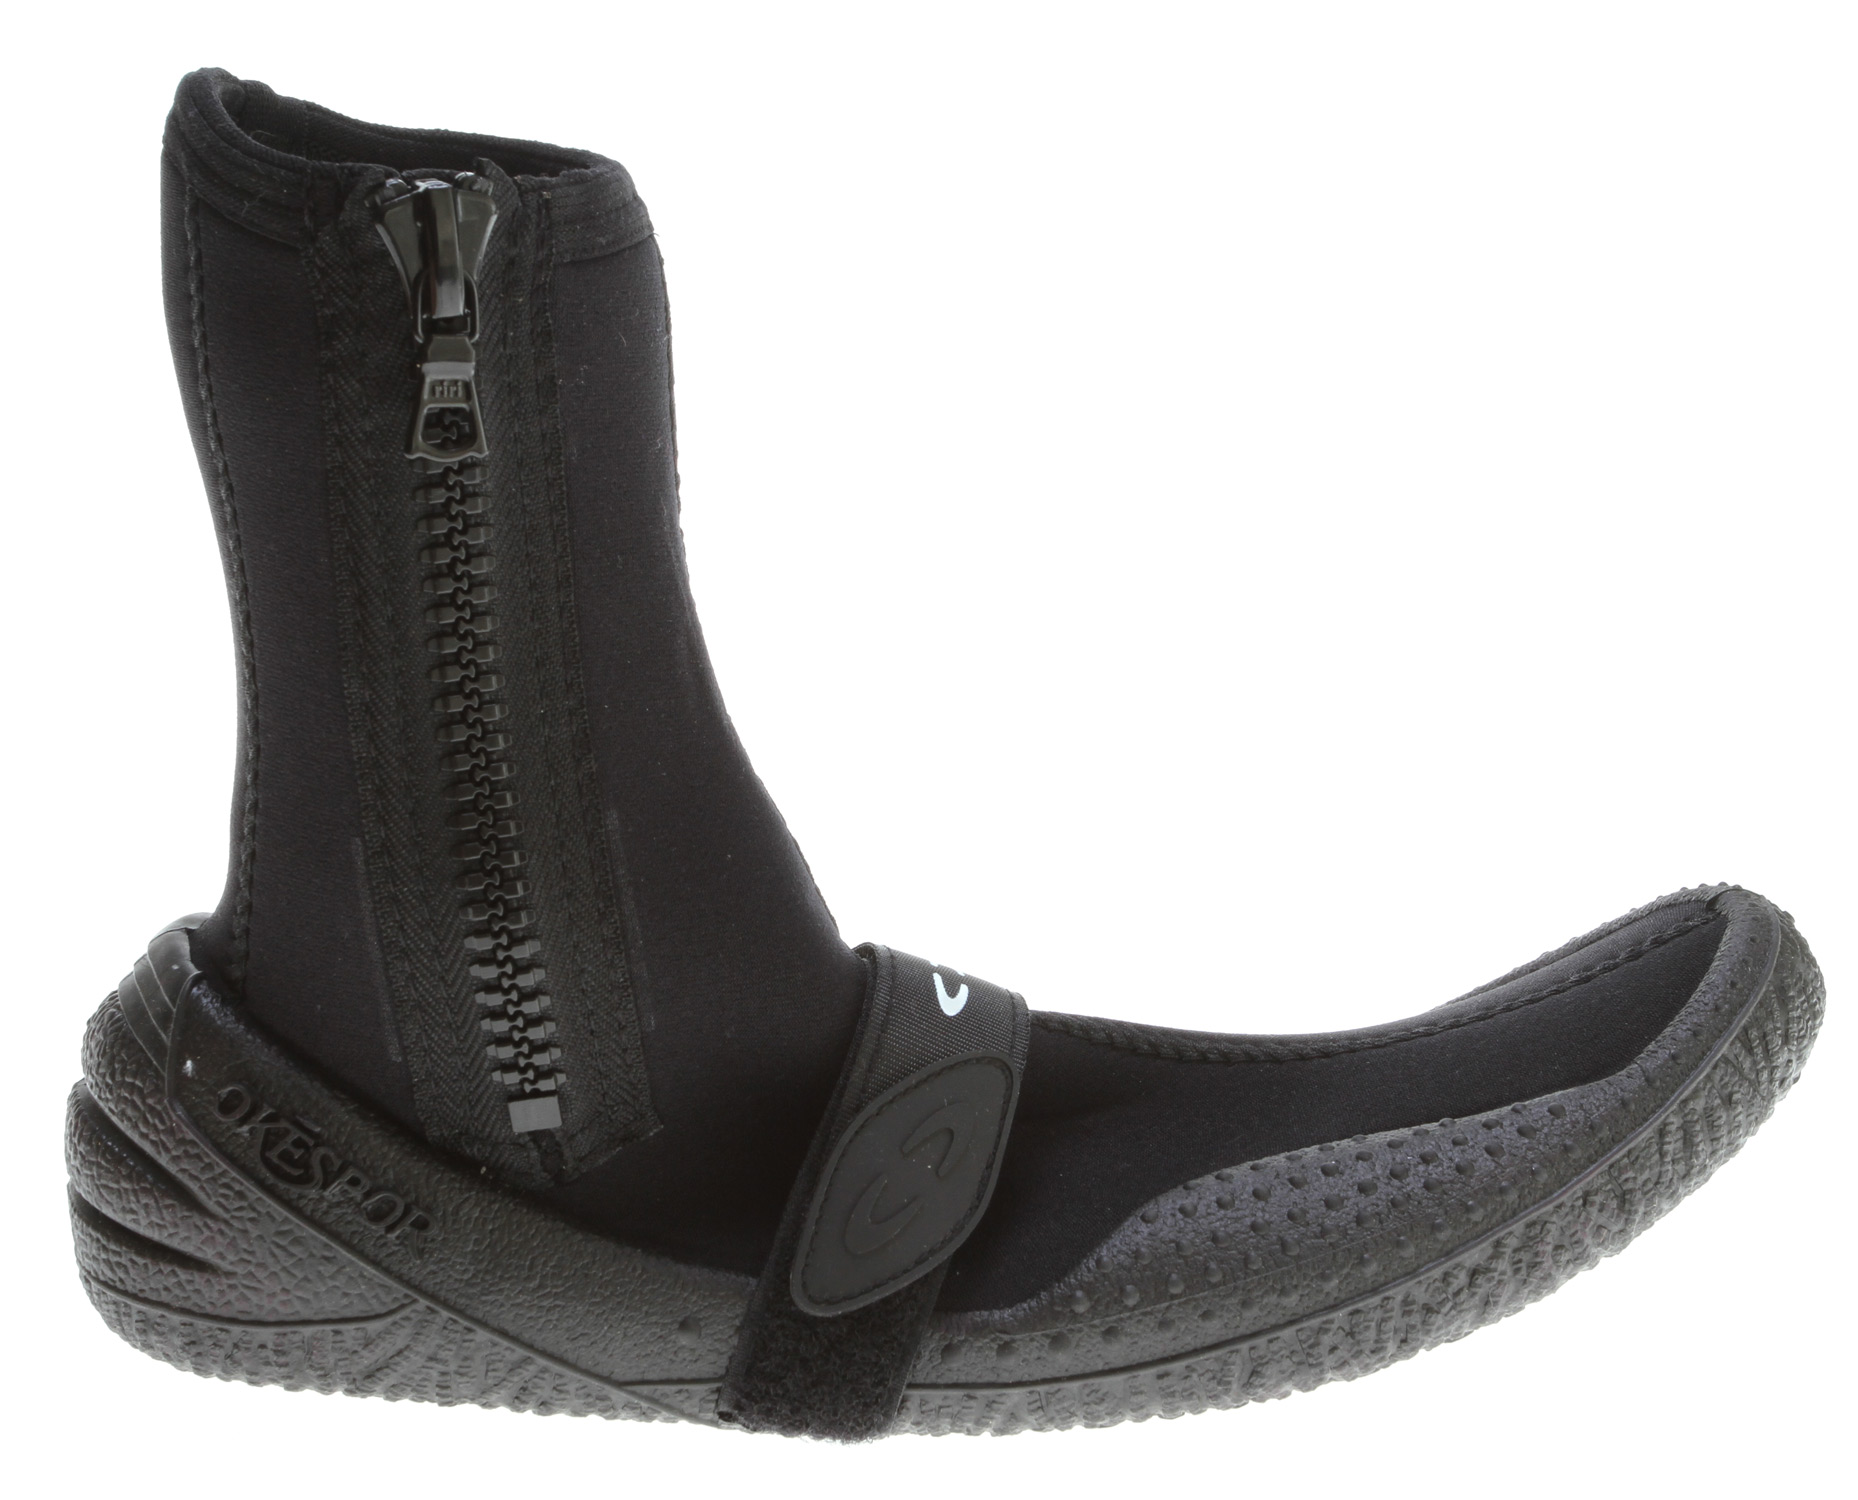 Fitness A cold water high boot with a side zipper for easy entry. 4mm construction with an injection molded sole and reinforced heel w/ arch strap. - $70.00